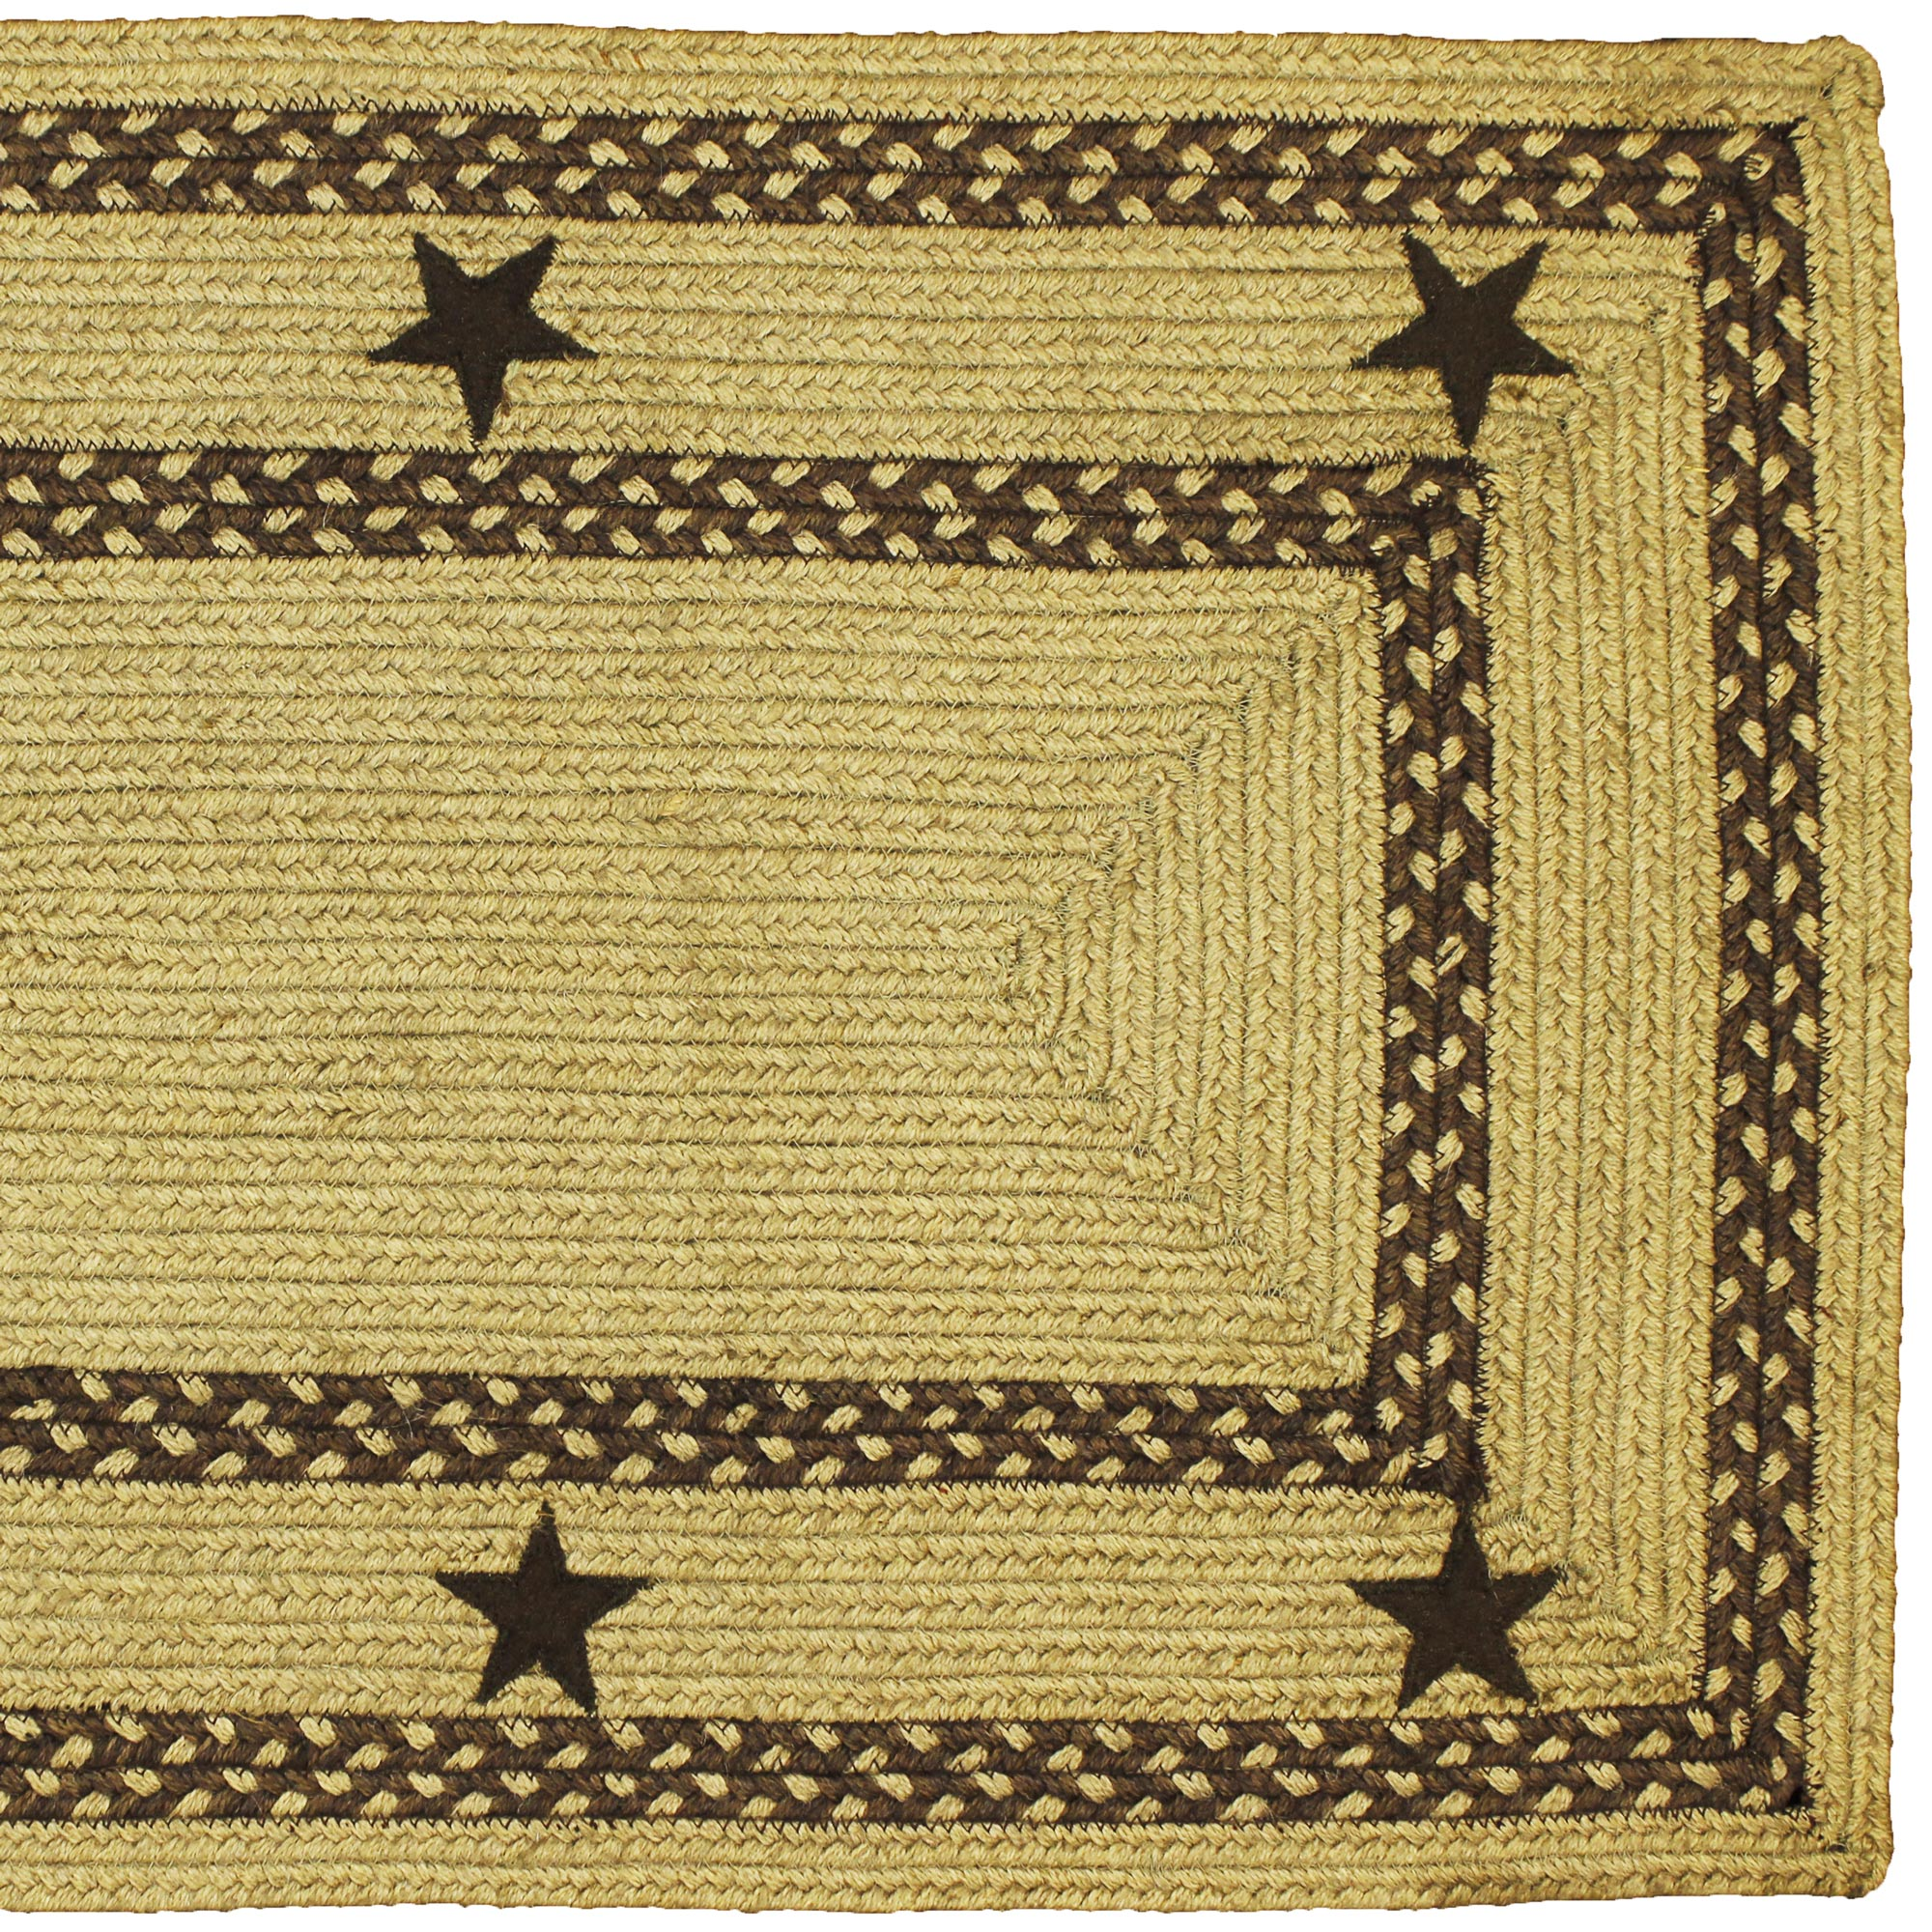 HSD Texas Brown Rectangle Braided Jute Rug Swatch  · Texas Star